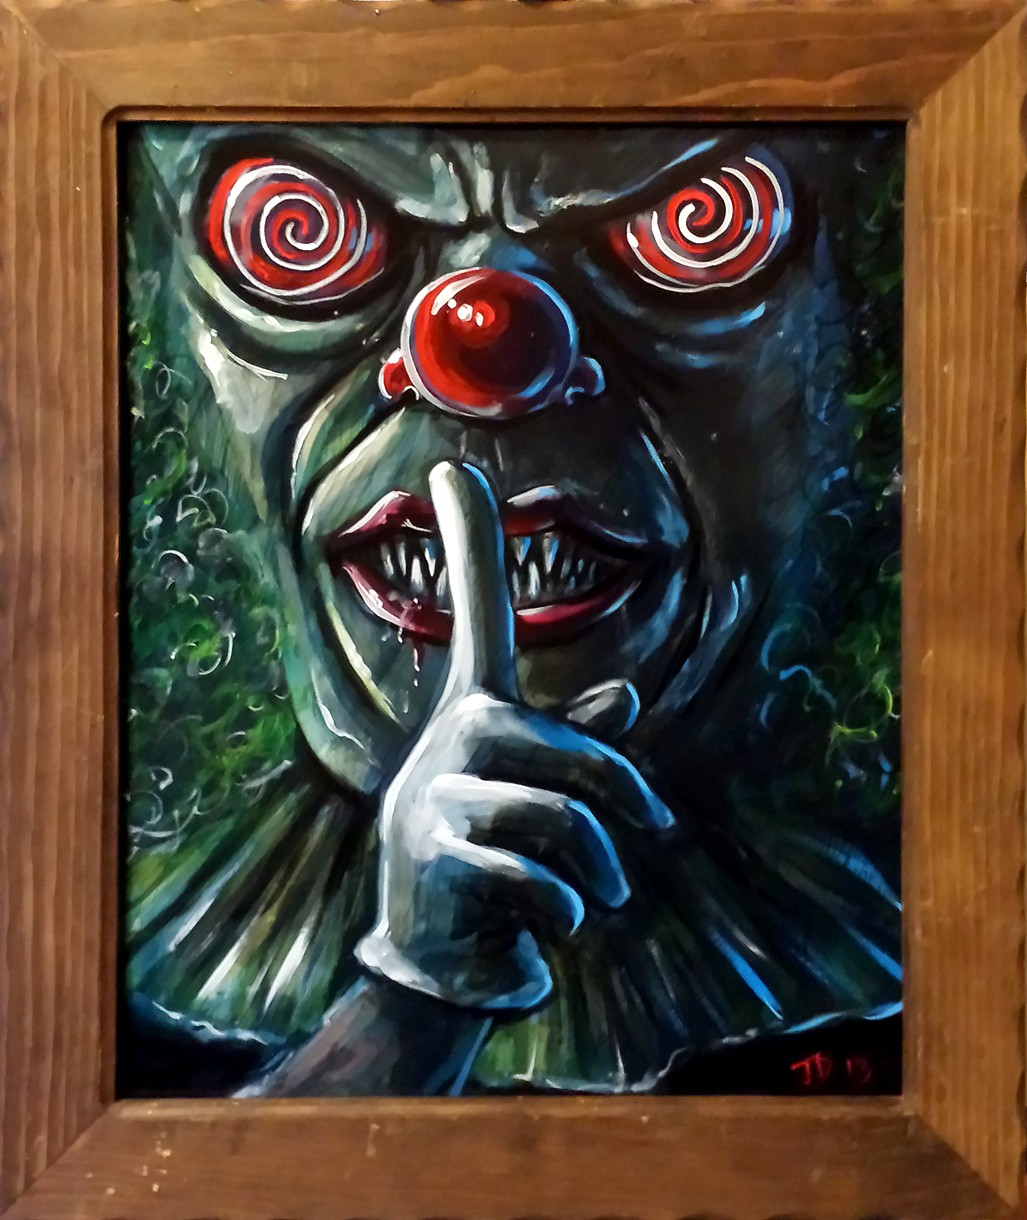 Creepy Clown by GinaAmyart on DeviantArt |Creepy Clown Painting